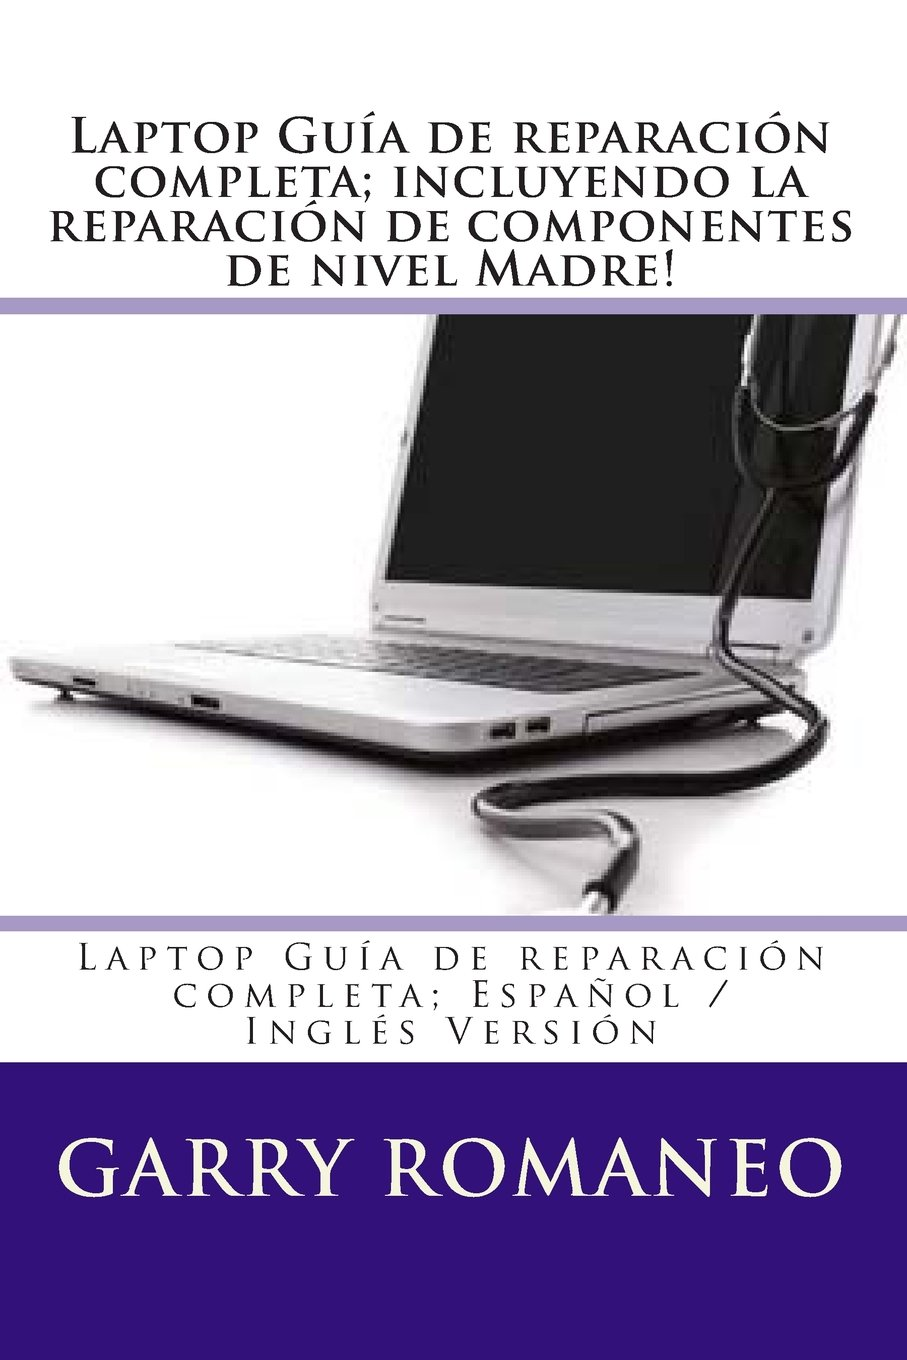 Laptop Guía de reparación completa; Español / Inglés Versión (Spanish and English Edition) (9781470043452): Garry Romaneo: Books